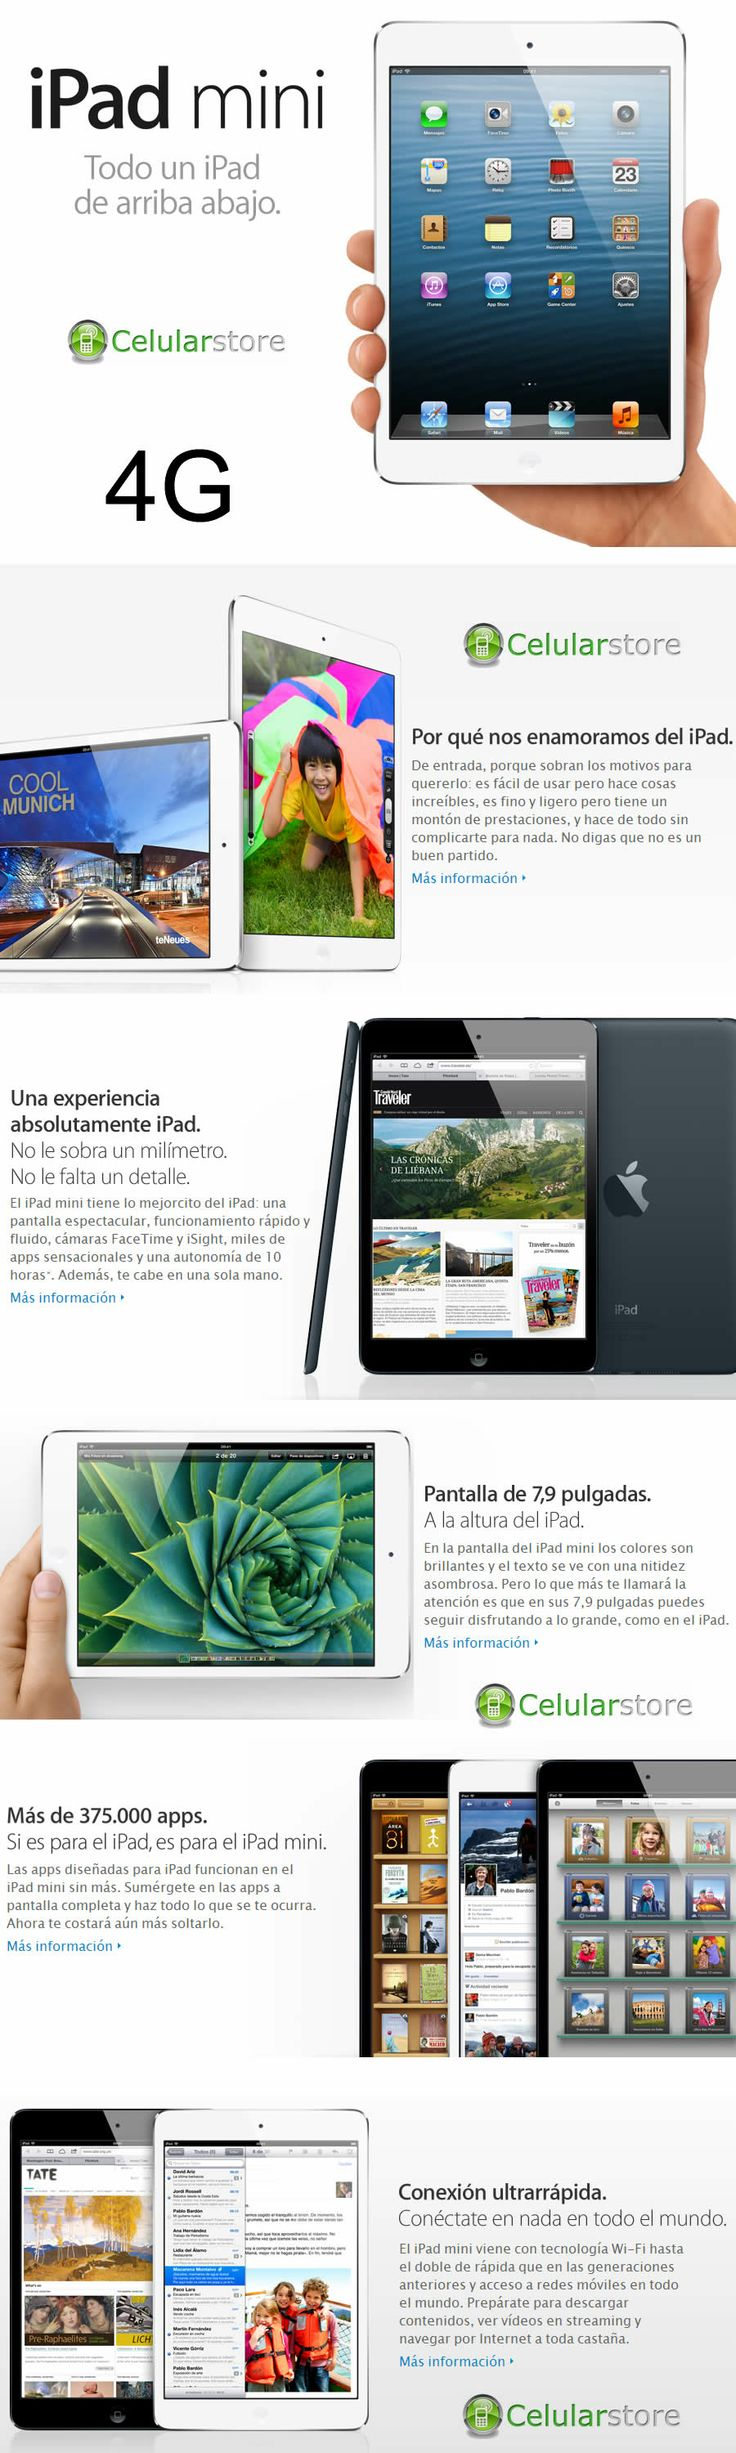 comprar apple ipad mini / venta apple ipad mini en argentina